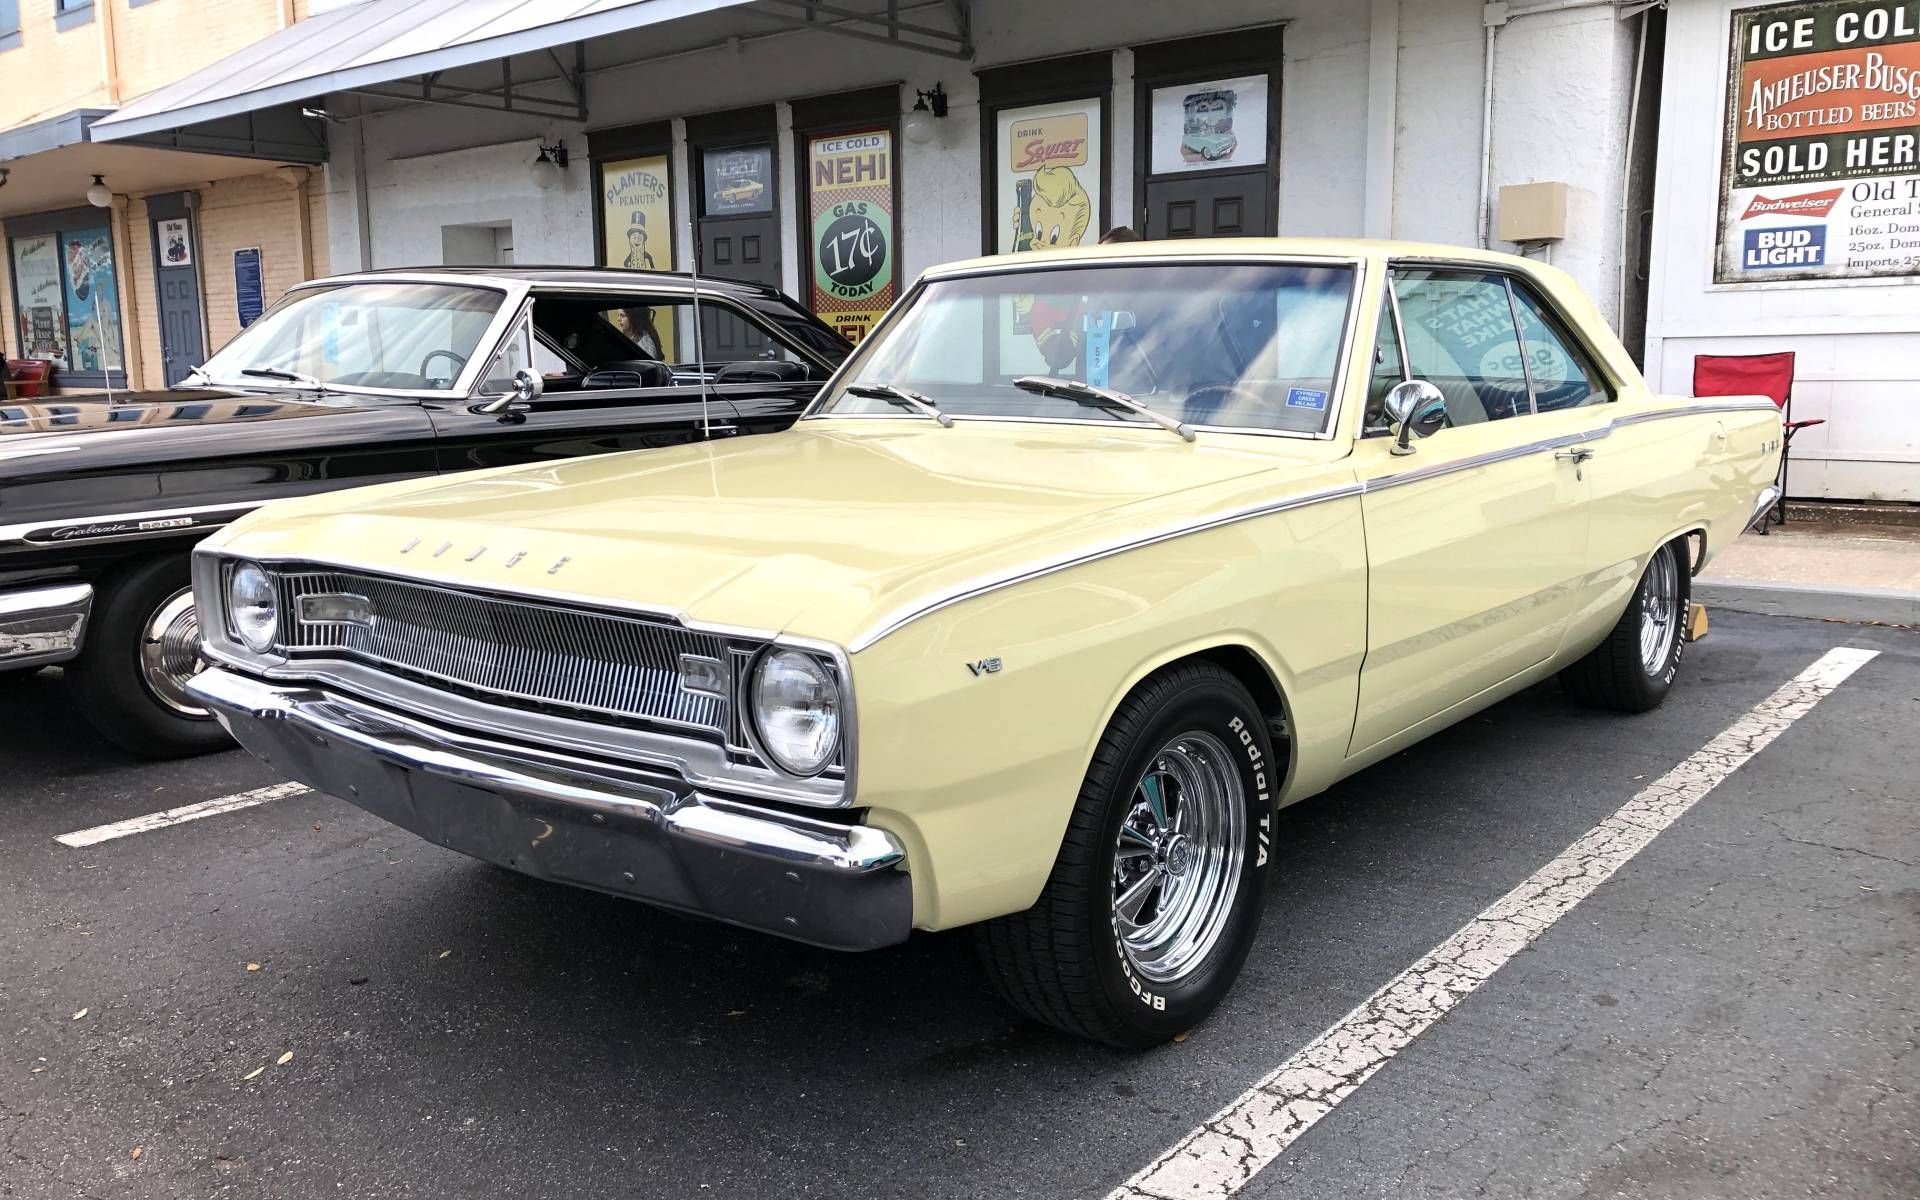 <p><strong>Dodge Dart 1967</strong></p>